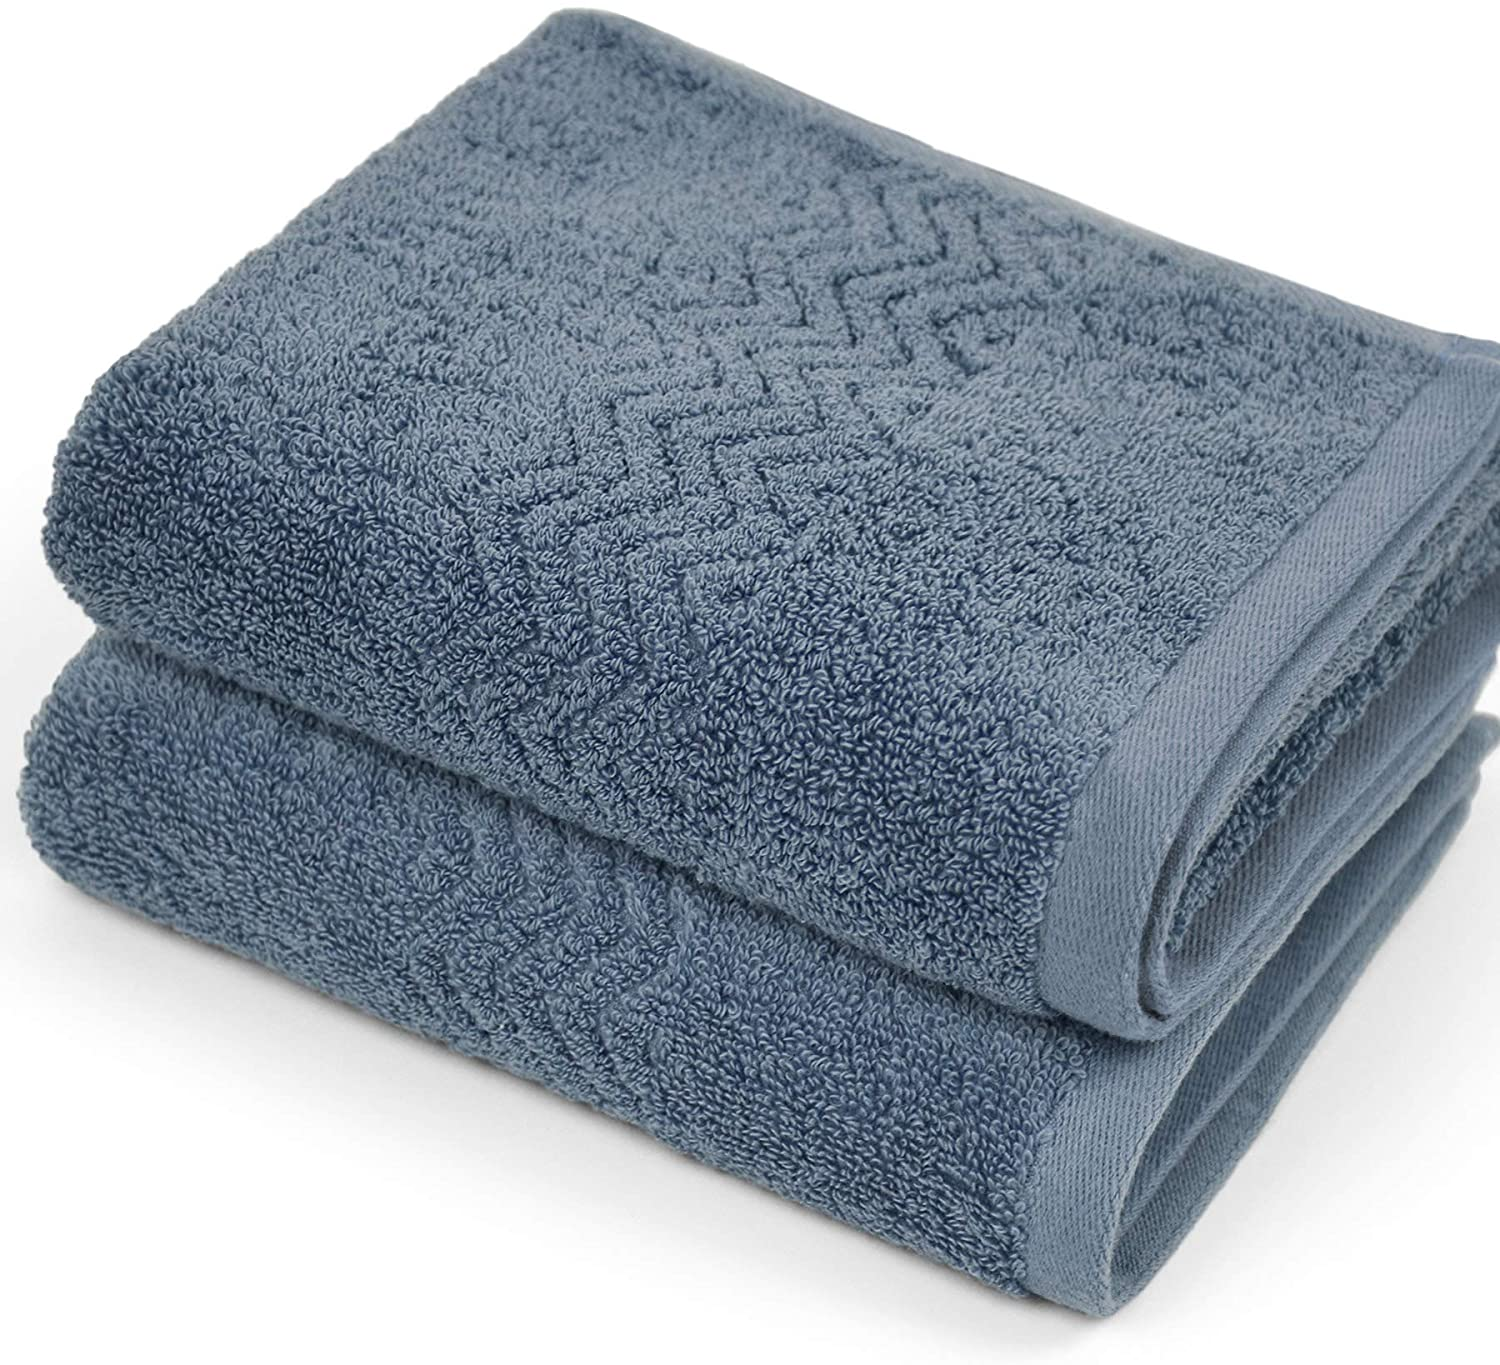 Cleanbear 100 Cotton Hand Towels Highly Absorbent Set Of 2 Blue Grey 13 X 28 Inches Amazon Co Uk Kitchen Home